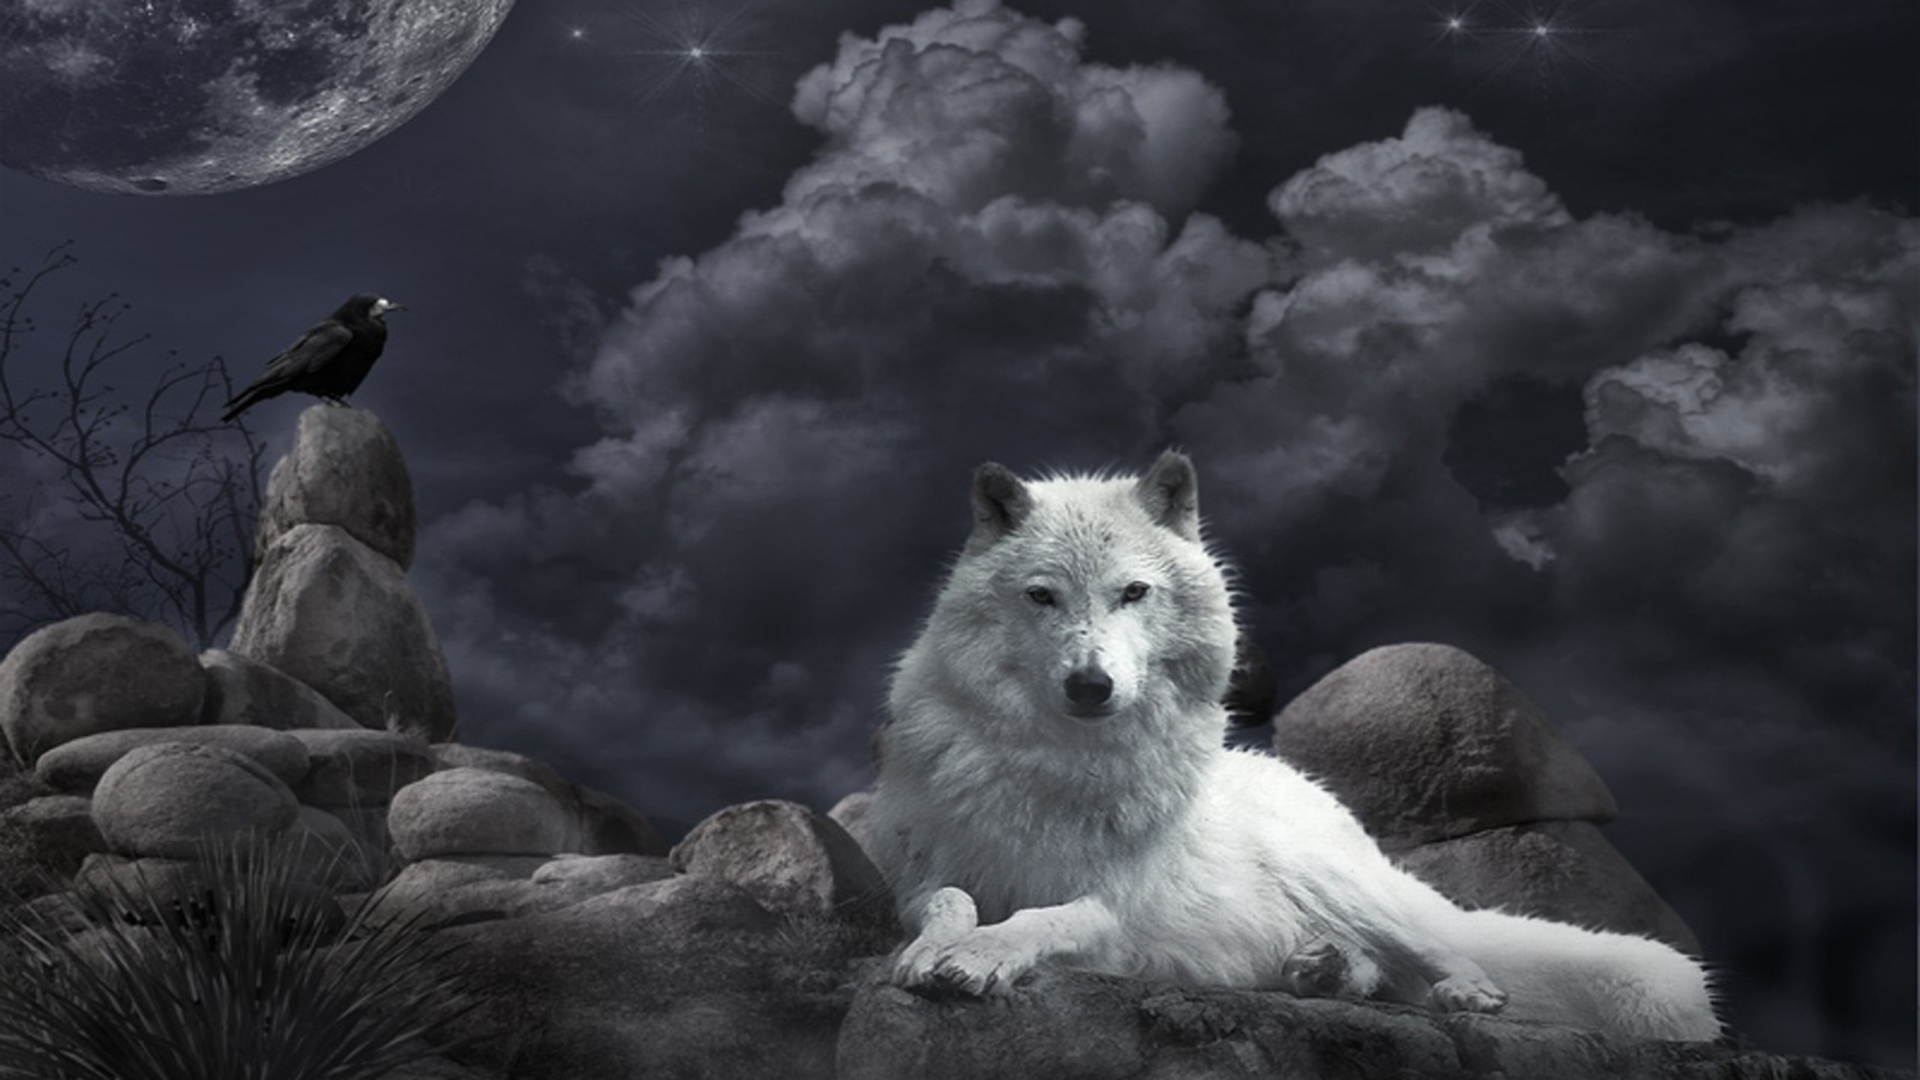 Night Guard Hd Wallpaper Background Image 1920x1080 Id